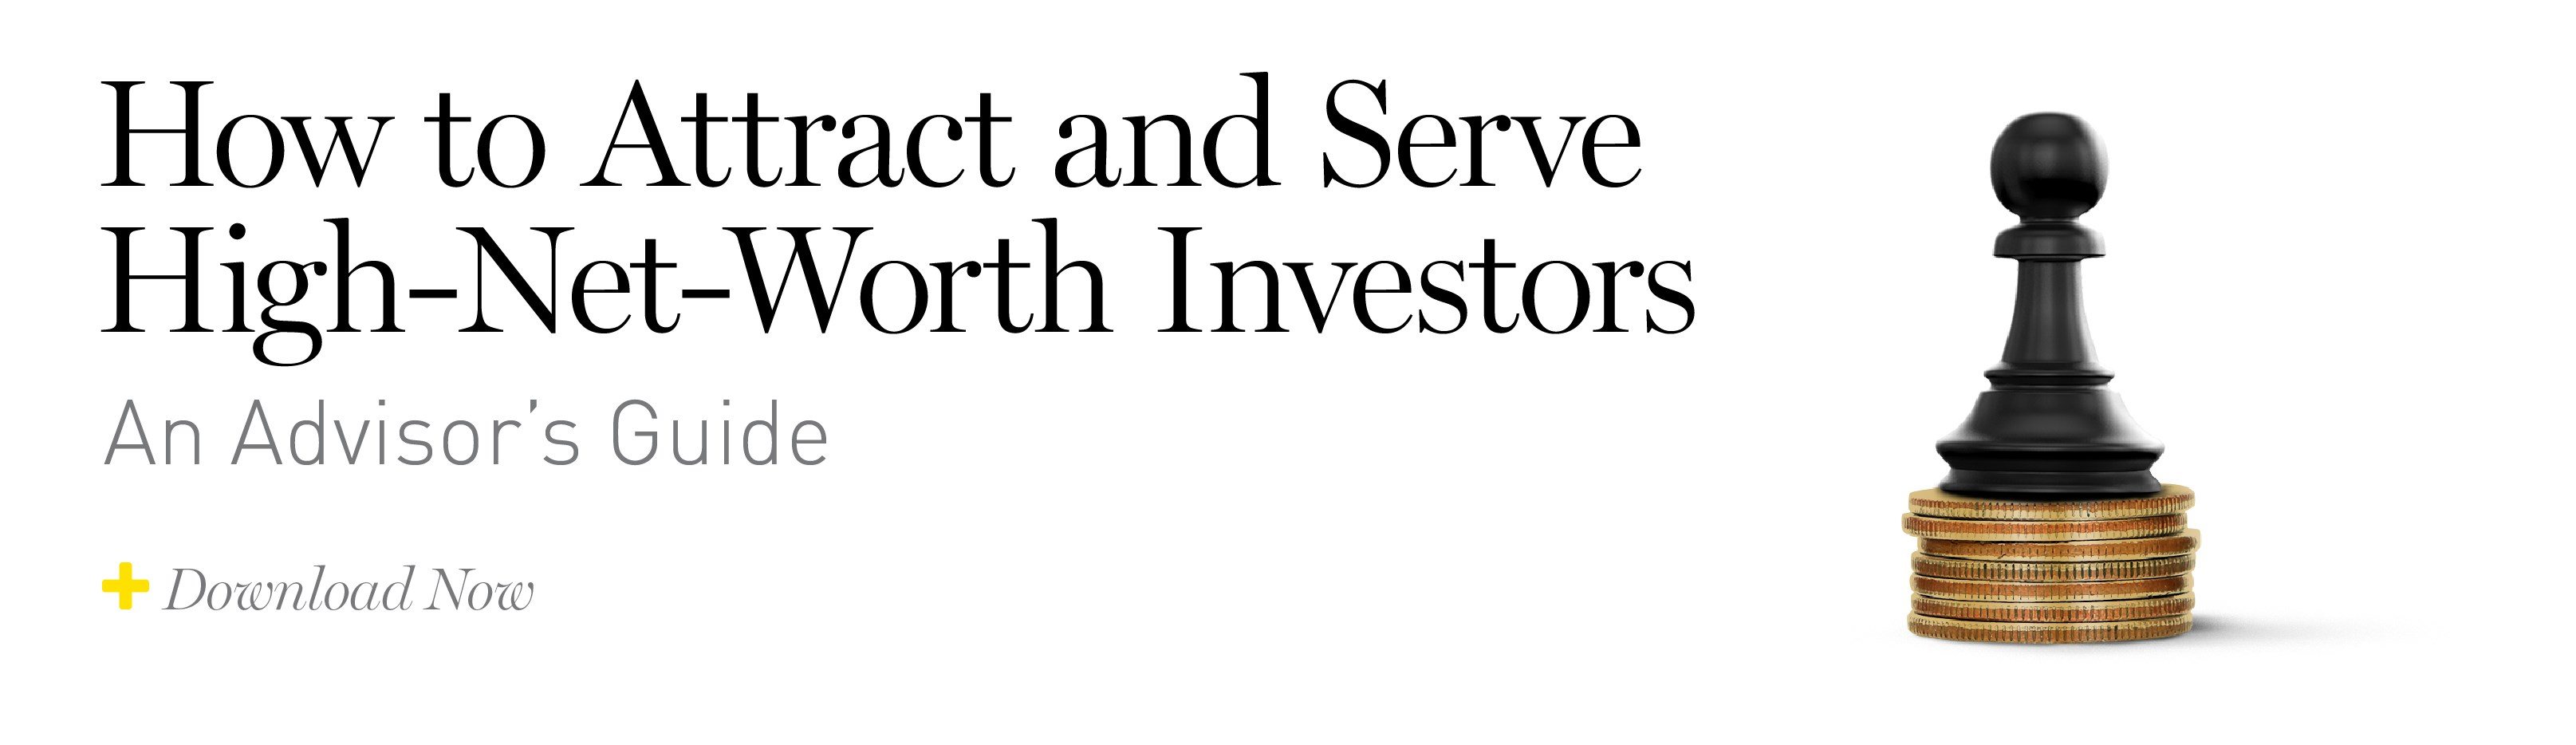 Click to download How to Attract and Serve High Net Worth Investors - An Advisor's Guide.